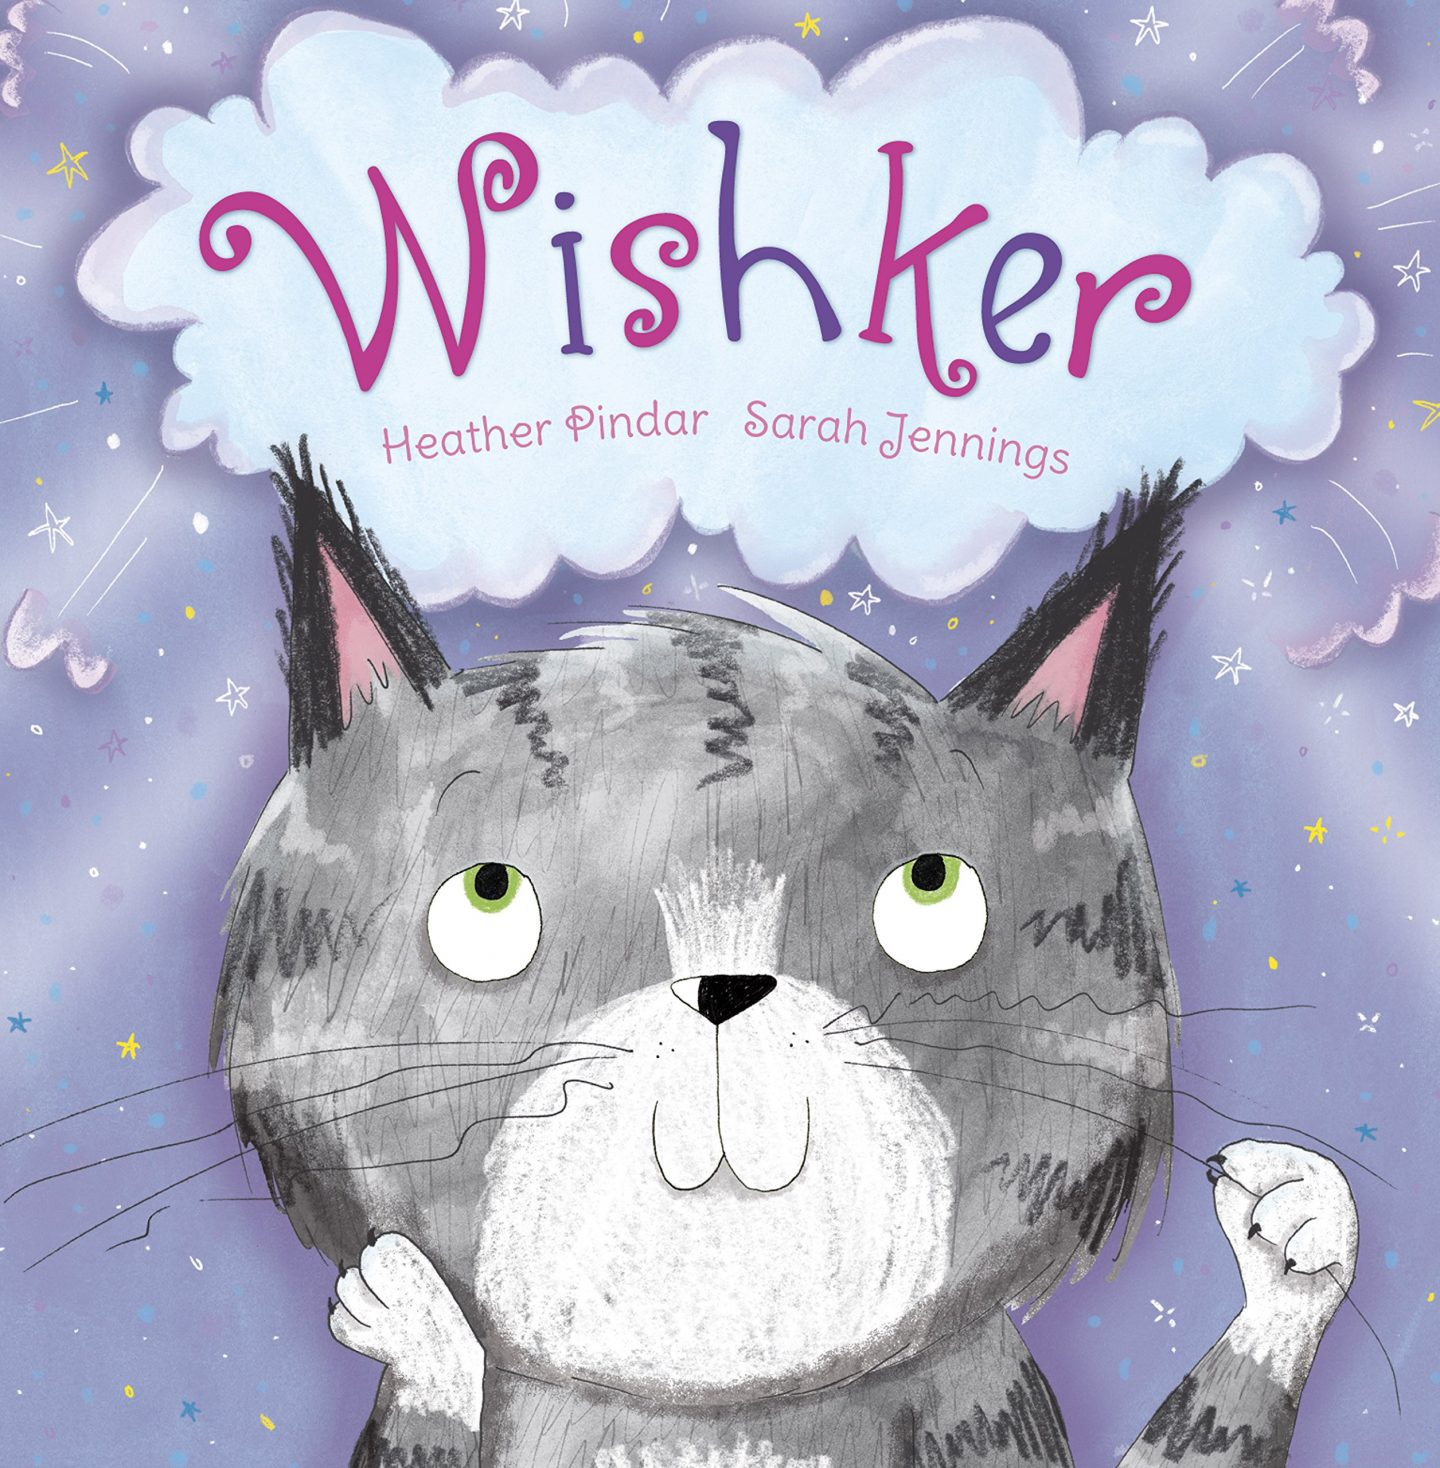 Wishker – children's book review